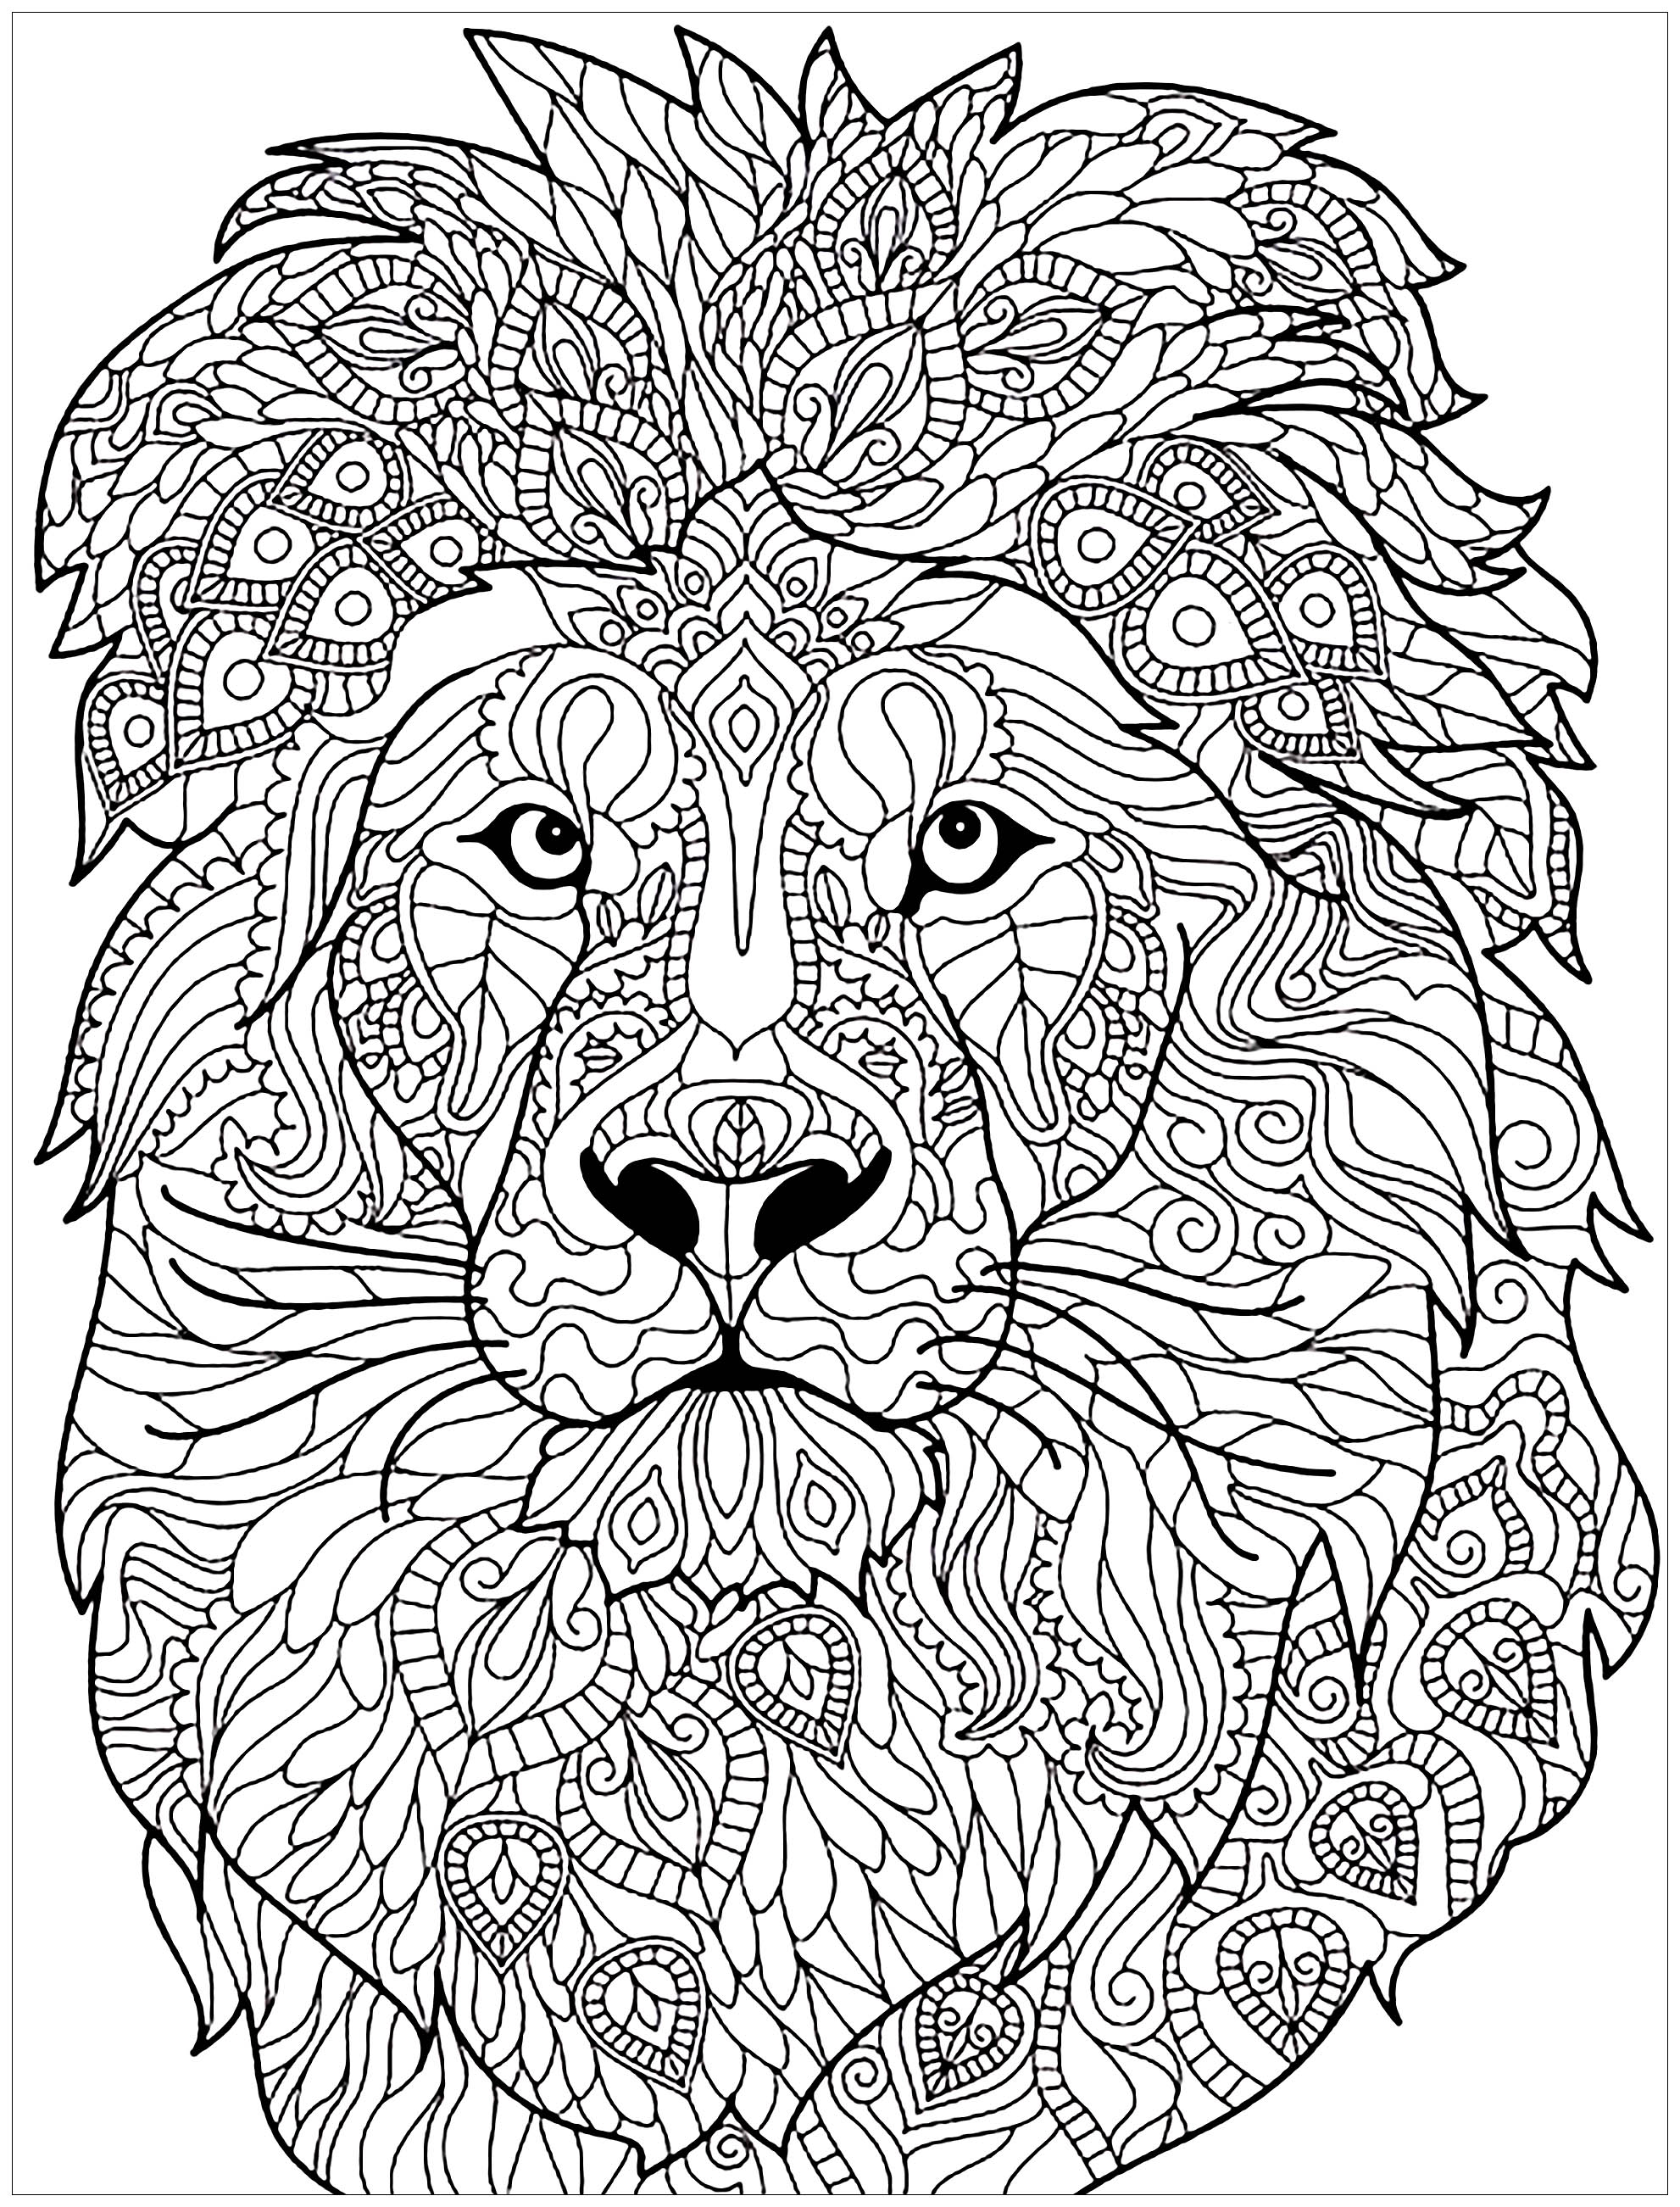 Lion plex patterns Lions Adult Coloring Pages